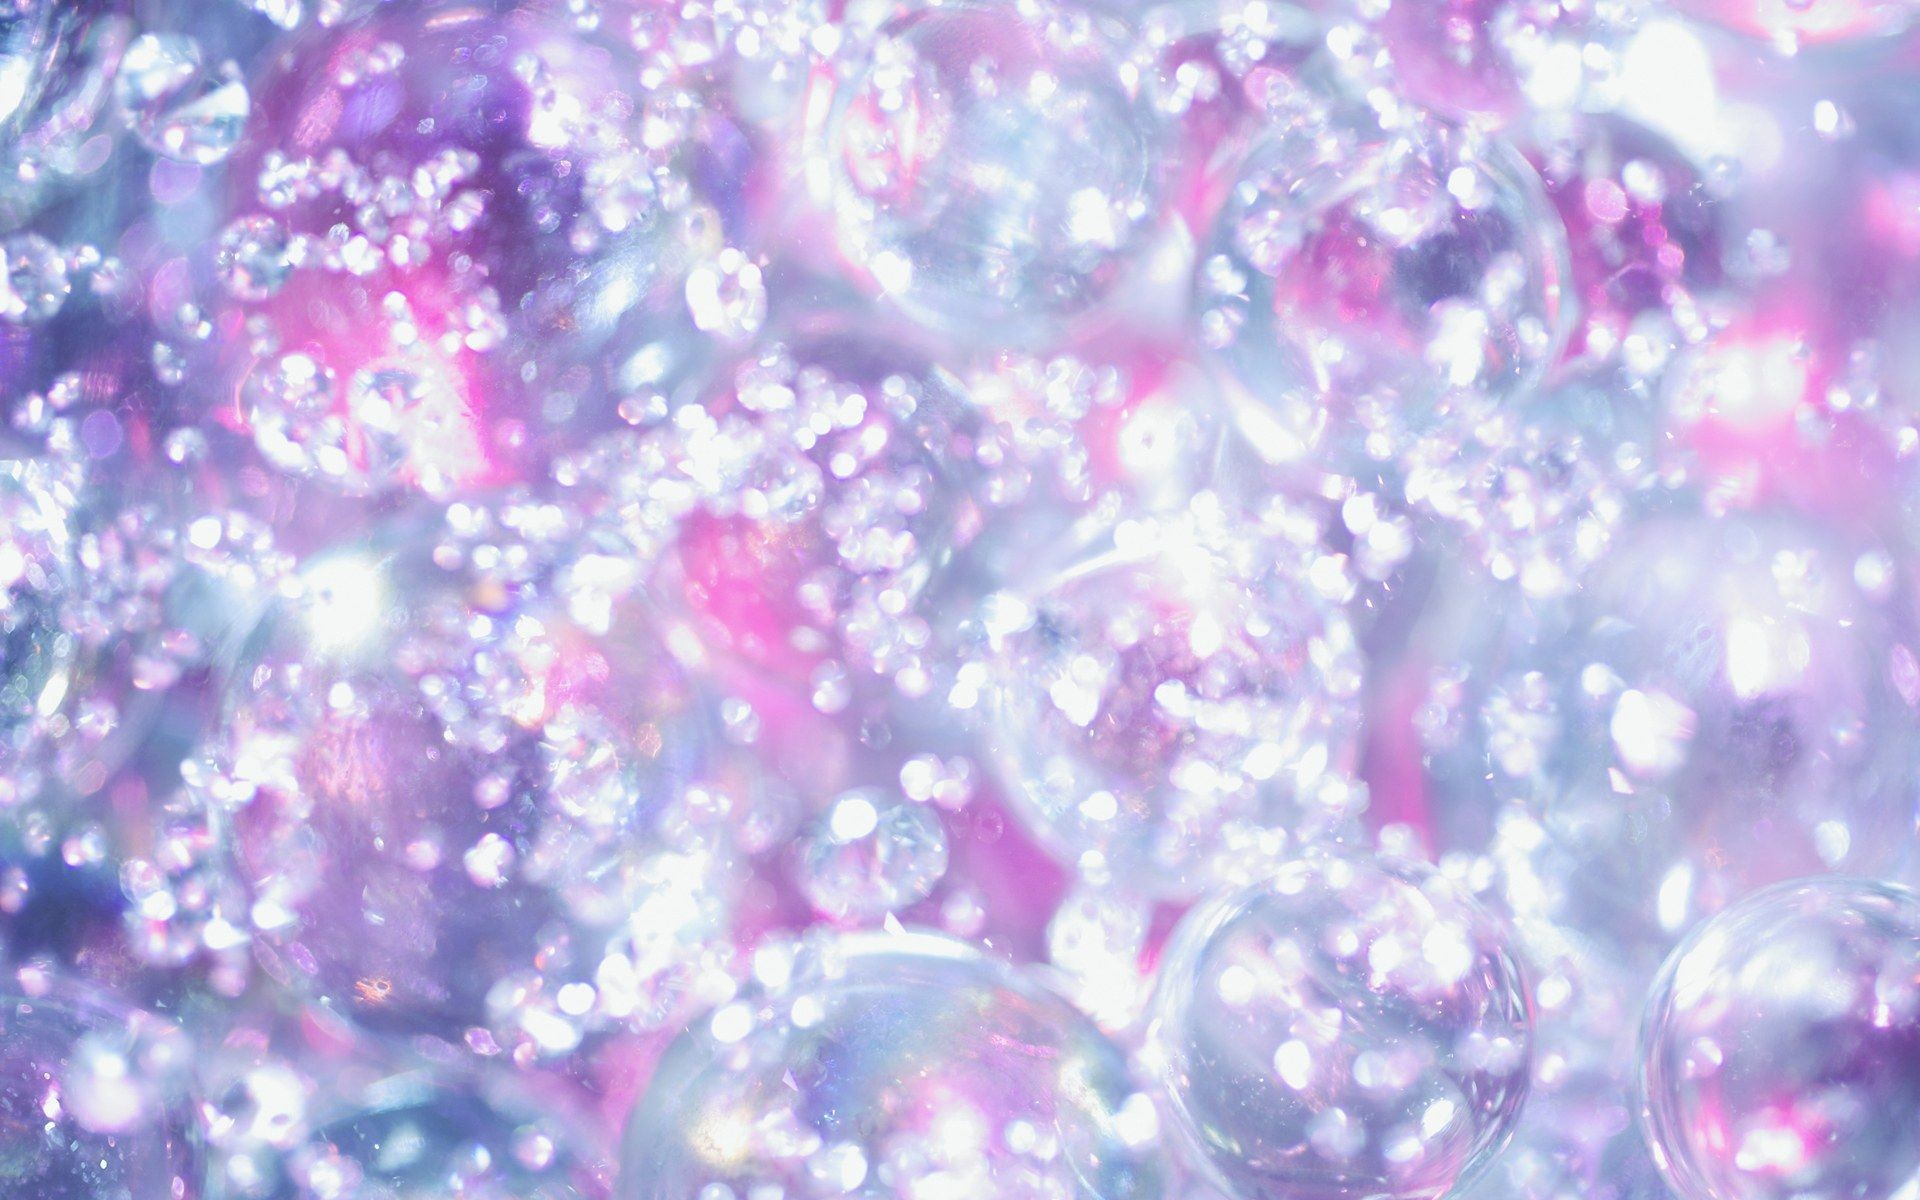 Sparkle background photo